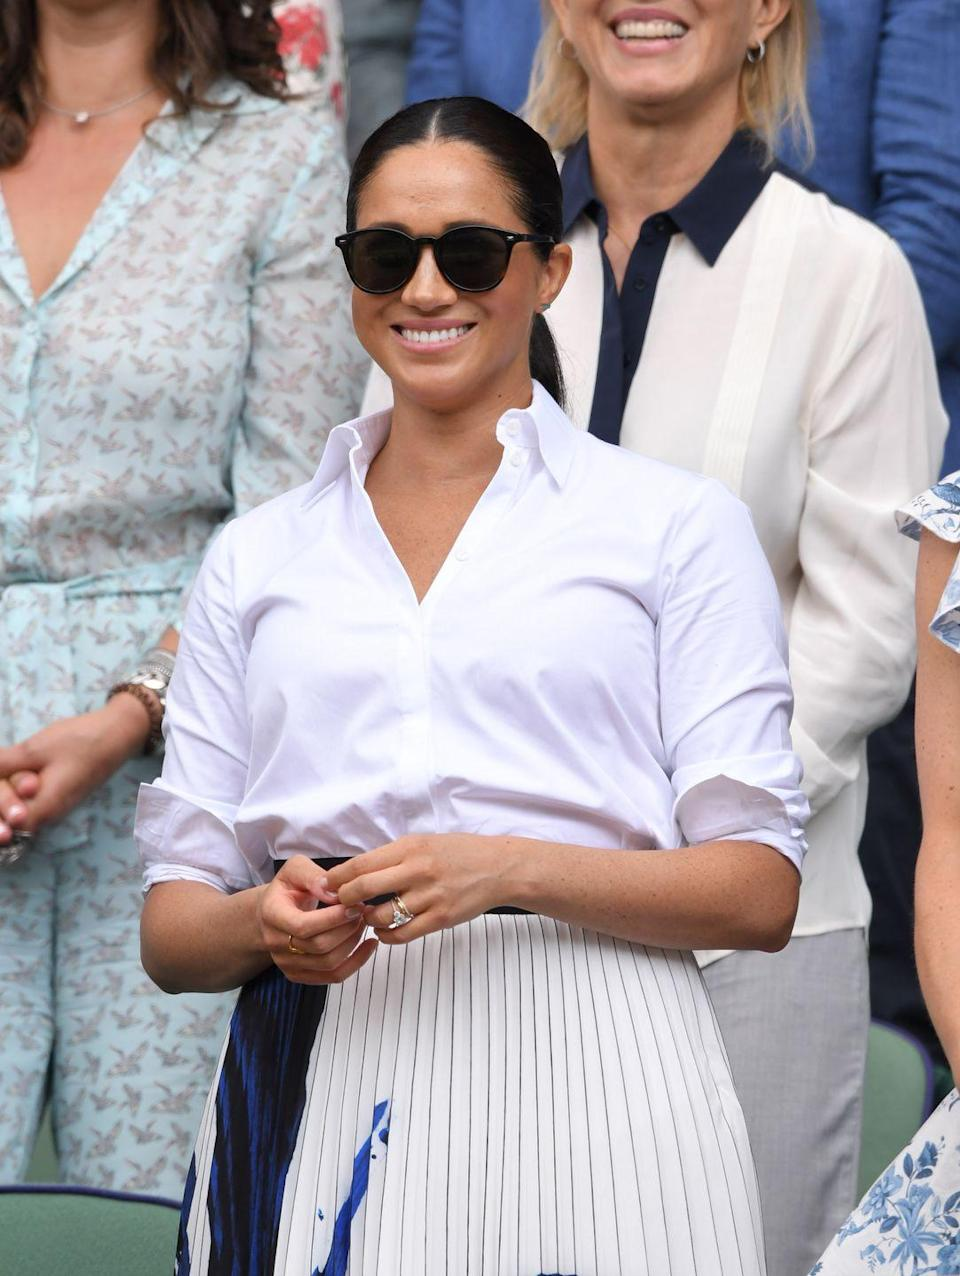 """<p>Meghan also wore a Givenchy button-down and skirt to attend Wimbledon in 2019. Shop a similar style below. </p><p><a class=""""link rapid-noclick-resp"""" href=""""https://go.redirectingat.com?id=74968X1596630&url=https%3A%2F%2Fwww.farfetch.com%2Fca%2Fshopping%2Fwomen%2Fgivenchy-bib-long-sleeved-buttoned-shirt-item-14759165.aspx%3Fstoreid%3D9910&sref=https%3A%2F%2Fwww.elle.com%2Ffashion%2Fshopping%2Fg36477134%2Fmeghan-markle-white-button-down-shirts%2F"""" rel=""""nofollow noopener"""" target=""""_blank"""" data-ylk=""""slk:Shop now"""">Shop now</a></p>"""